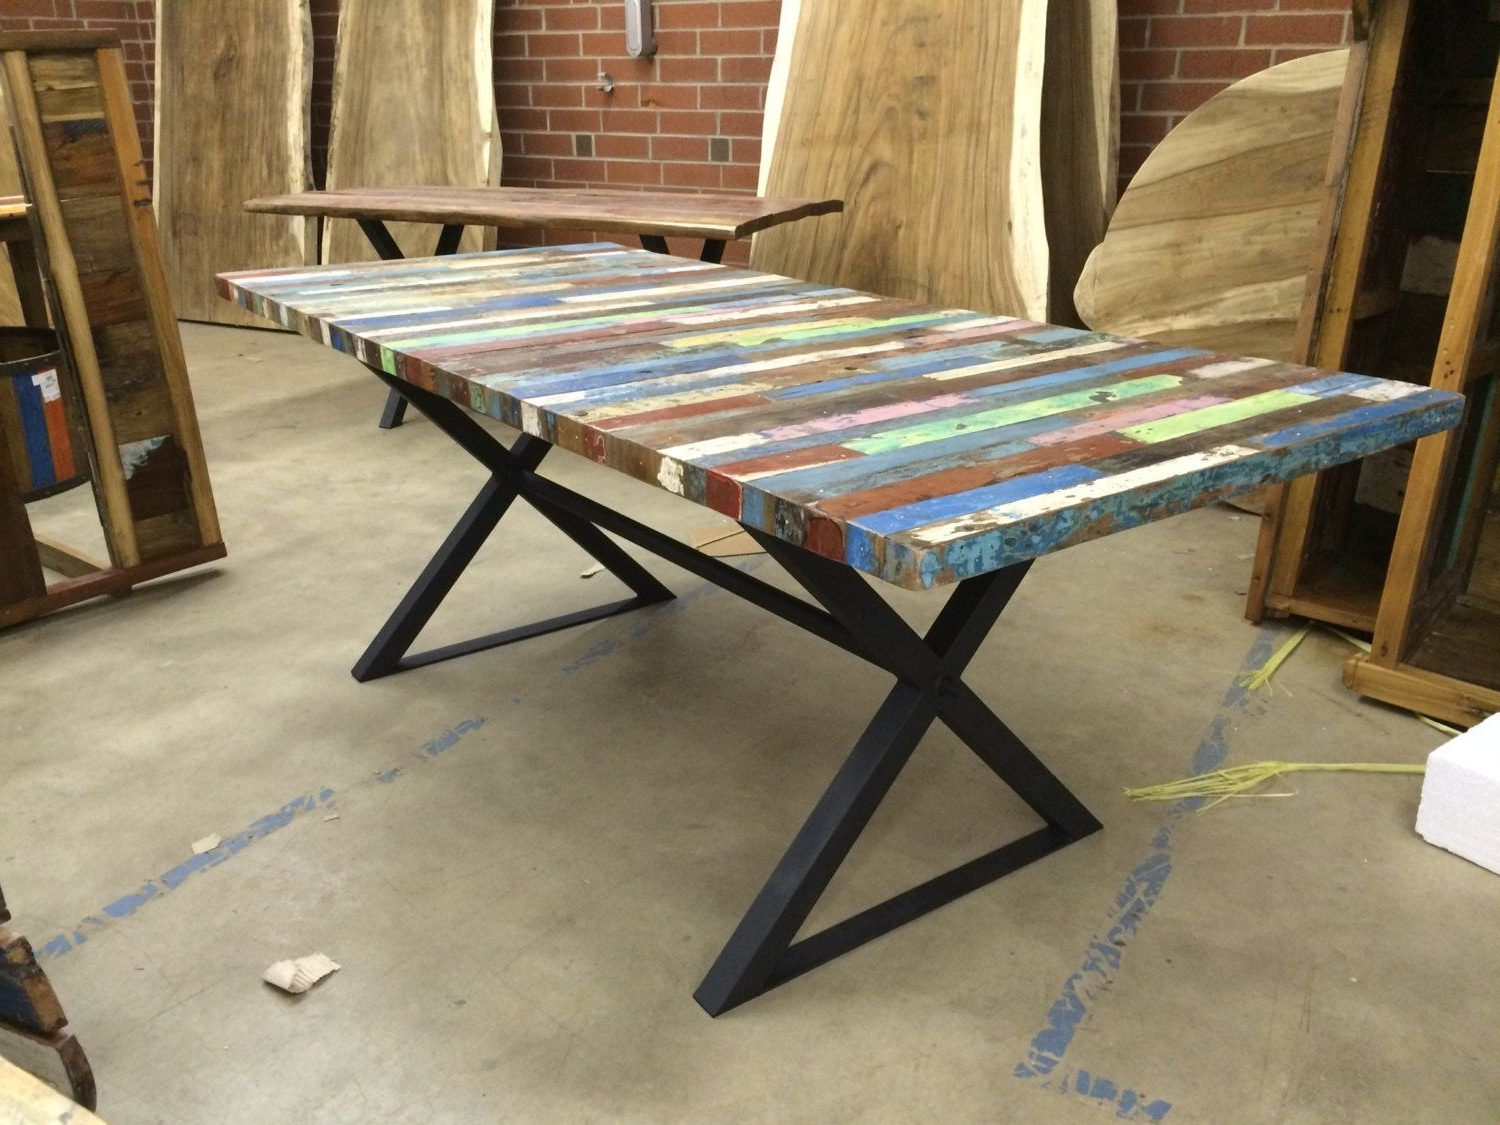 Newest Buy A Handmade Reclaimed Dining Table, Bali Boat Wood Table, Custom In Cheap Reclaimed Wood Dining Tables (Gallery 10 of 25)